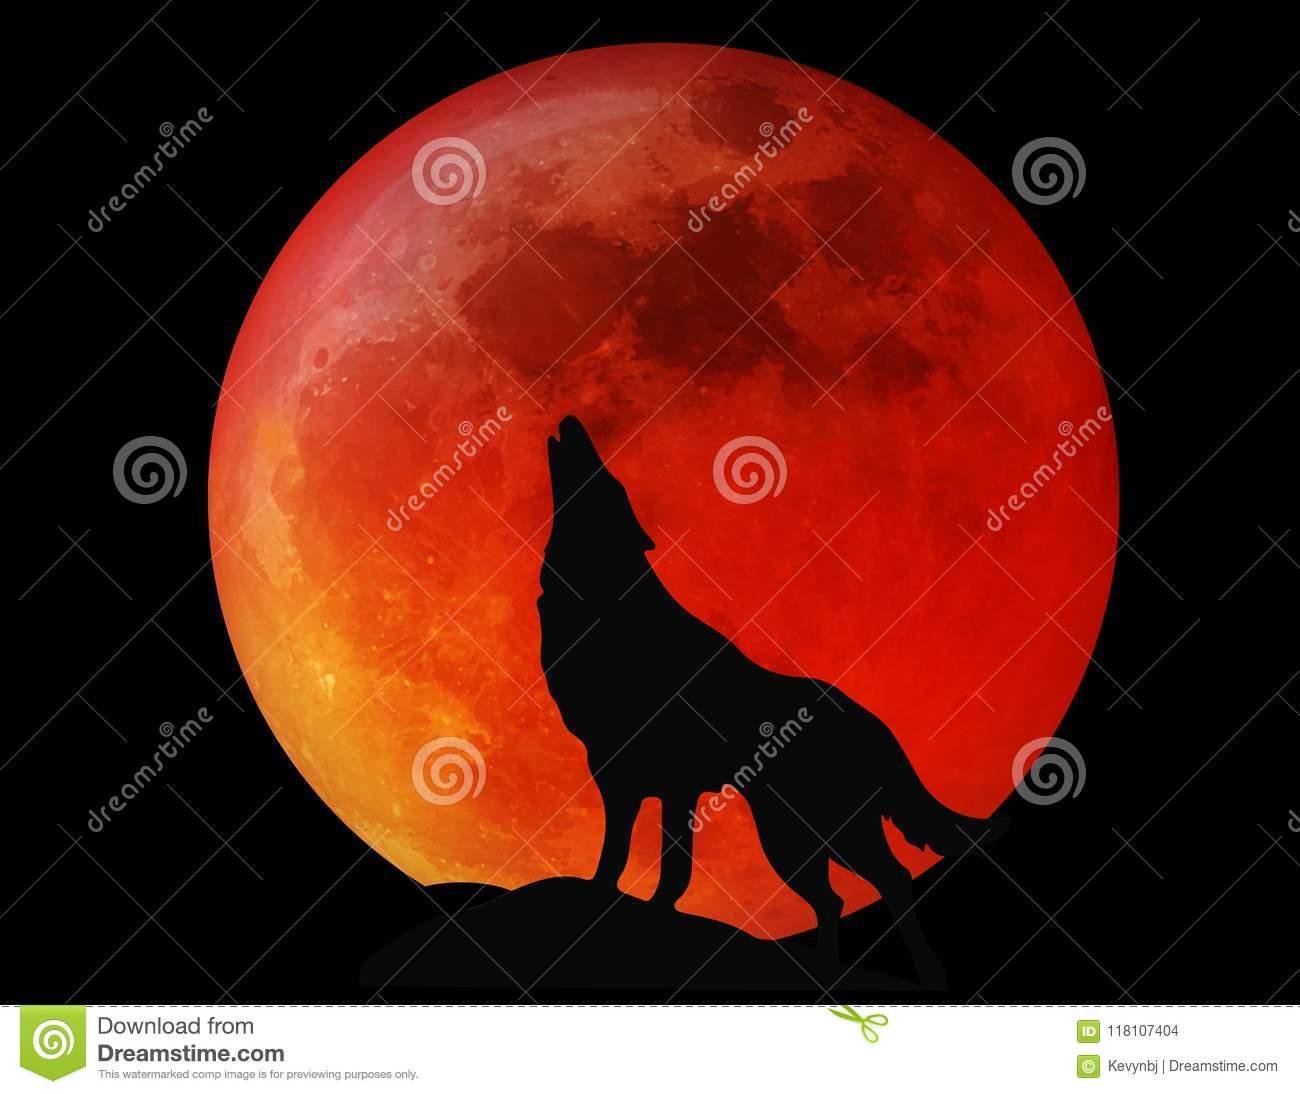 Pleine lune Wolf Blood Red de Halloween